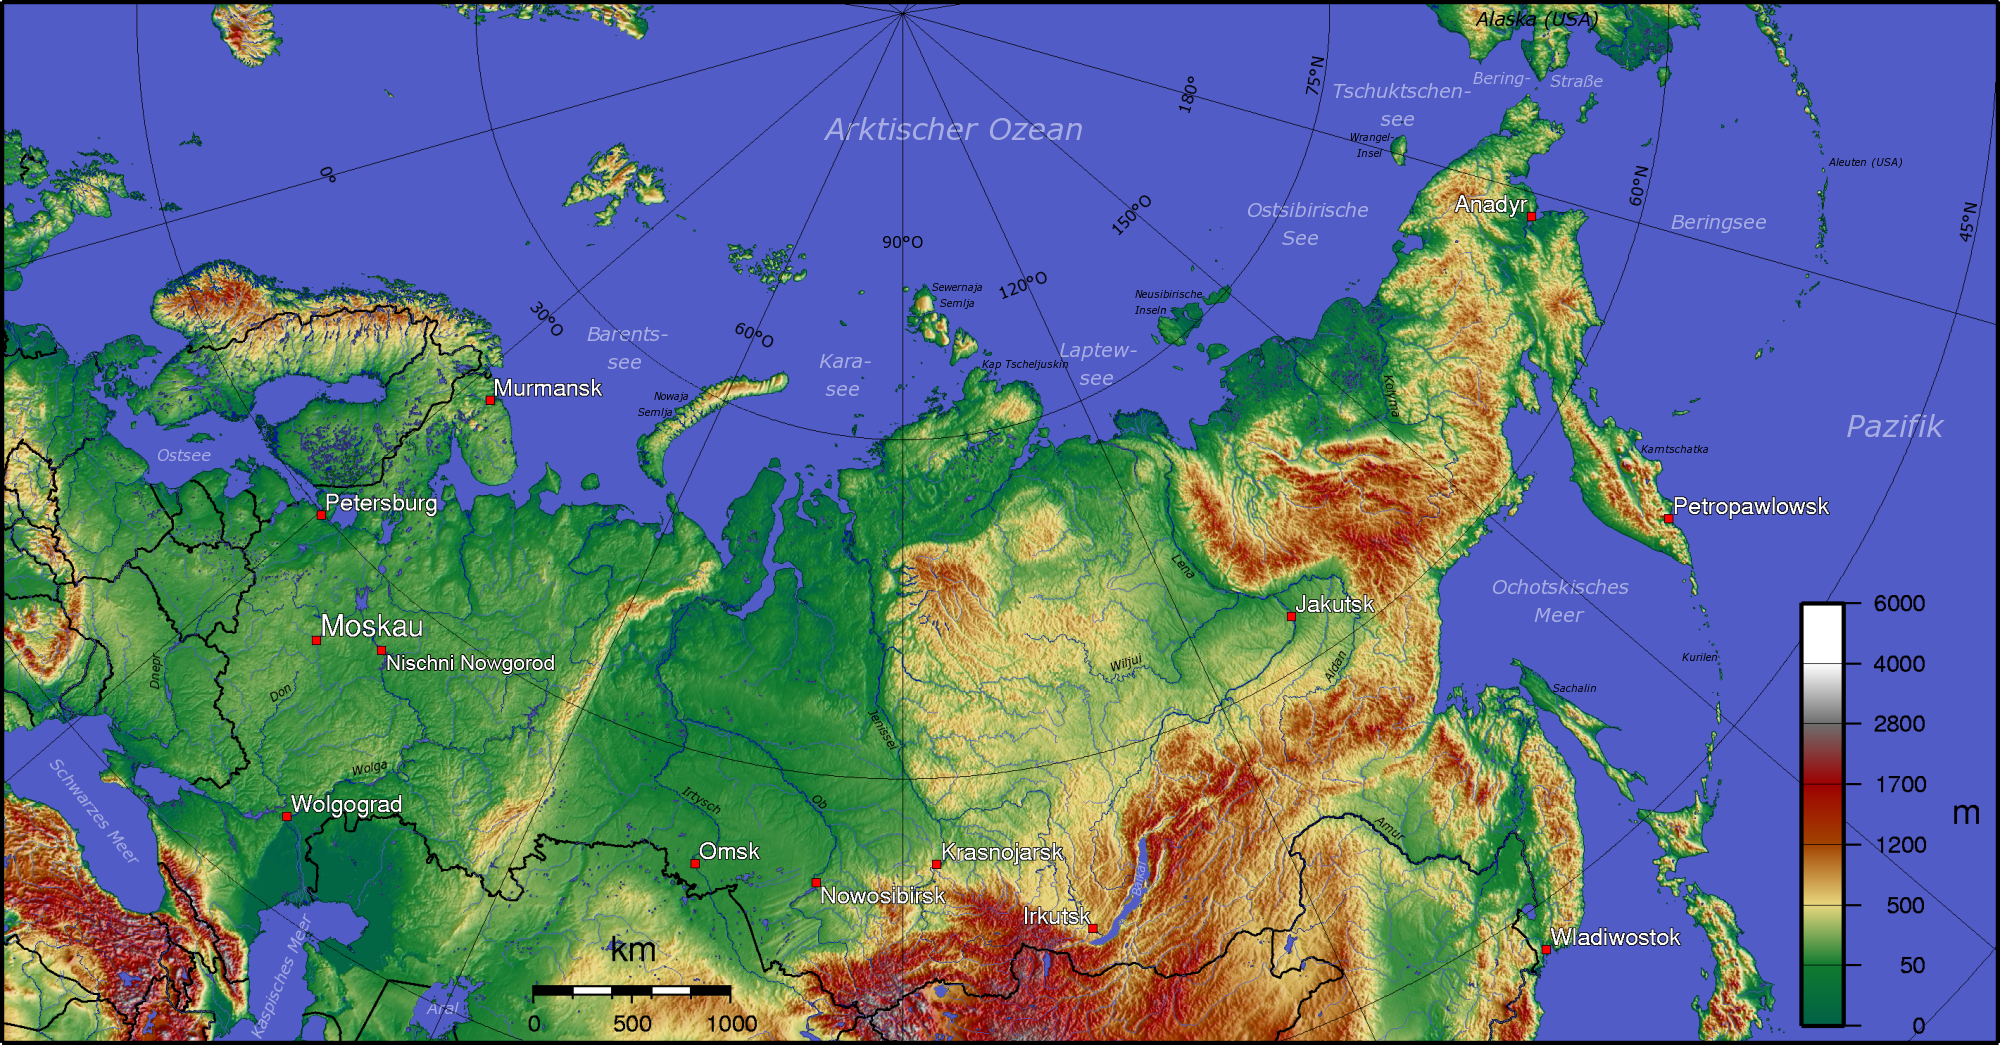 http://upload.wikimedia.org/wikipedia/commons/3/3d/Russland_topo.png